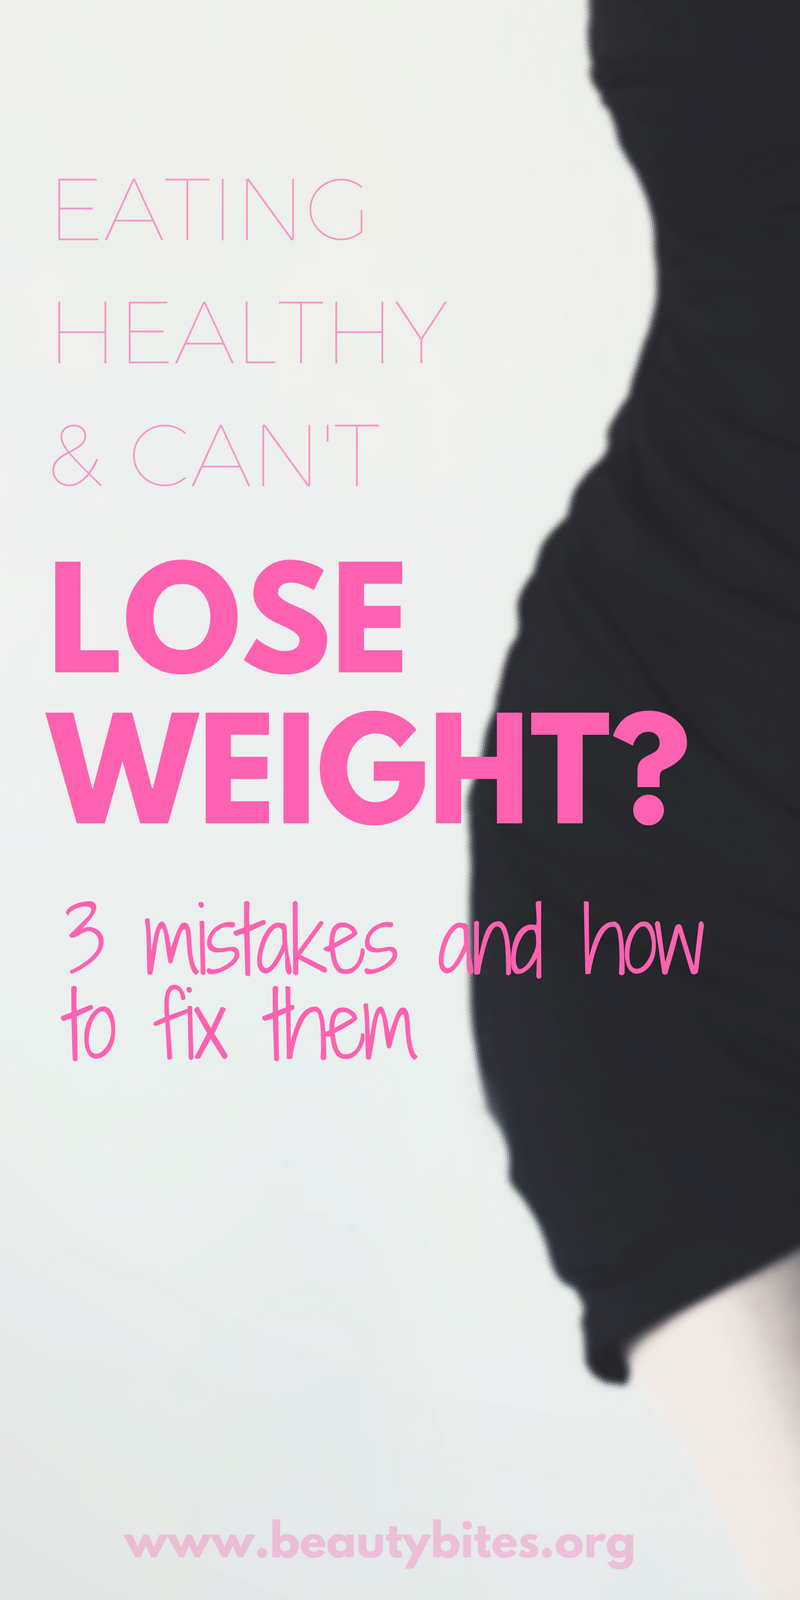 Can i lose weight with colonic irrigation